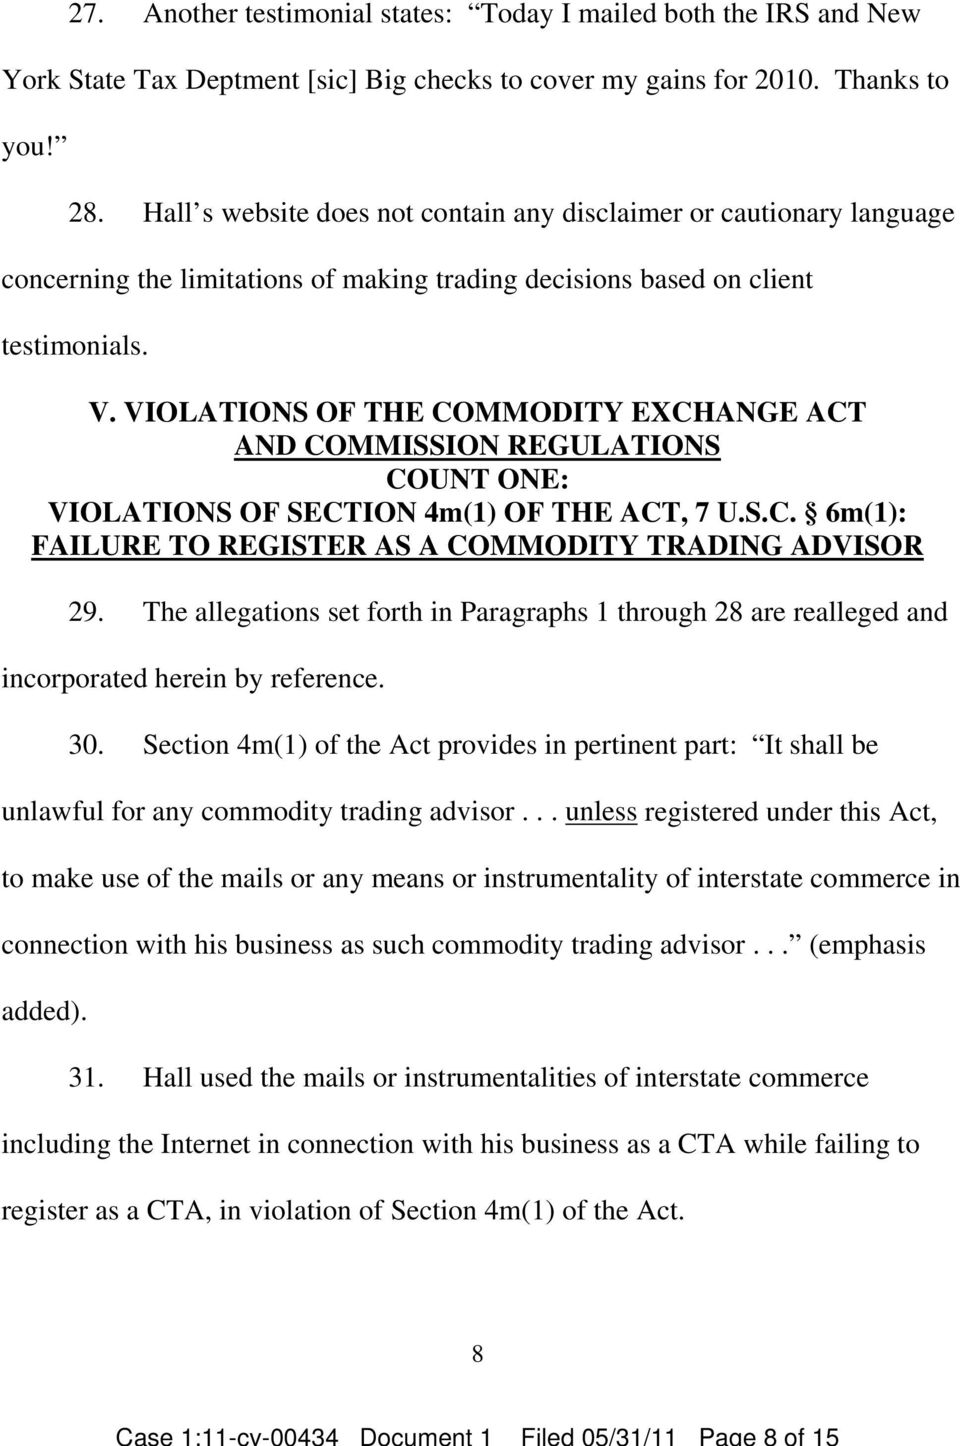 VIOLATIONS OF THE COMMODITY EXCHANGE ACT AND COMMISSION REGULATIONS COUNT ONE: VIOLATIONS OF SECTION 4m(1 OF THE ACT, 7 U.S.C. 6m(1: FAILURE TO REGISTER AS A COMMODITY TRADING ADVISOR 29.